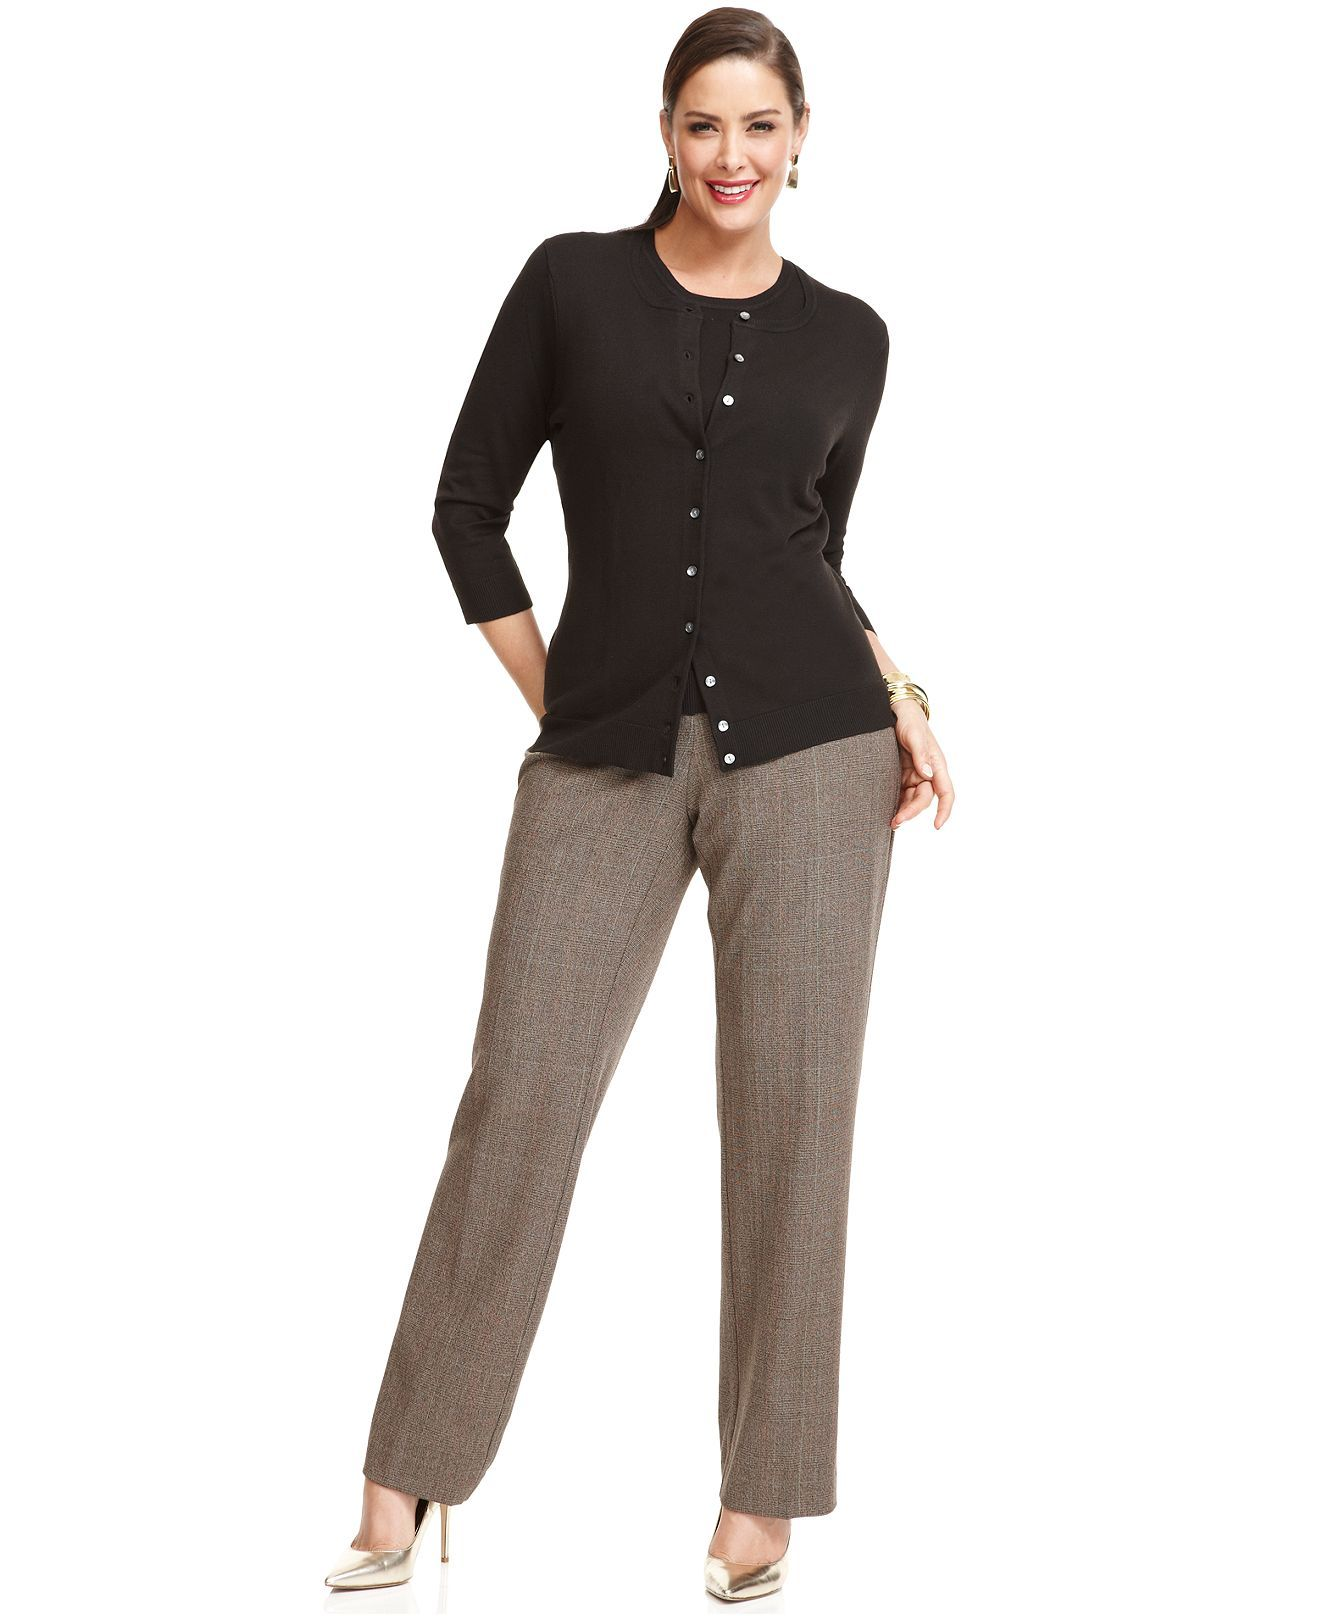 Work Your Wardrobe Plus Size Twinset & Trousers Look - The Layering Cardigan - Plus Sizes - Macy's